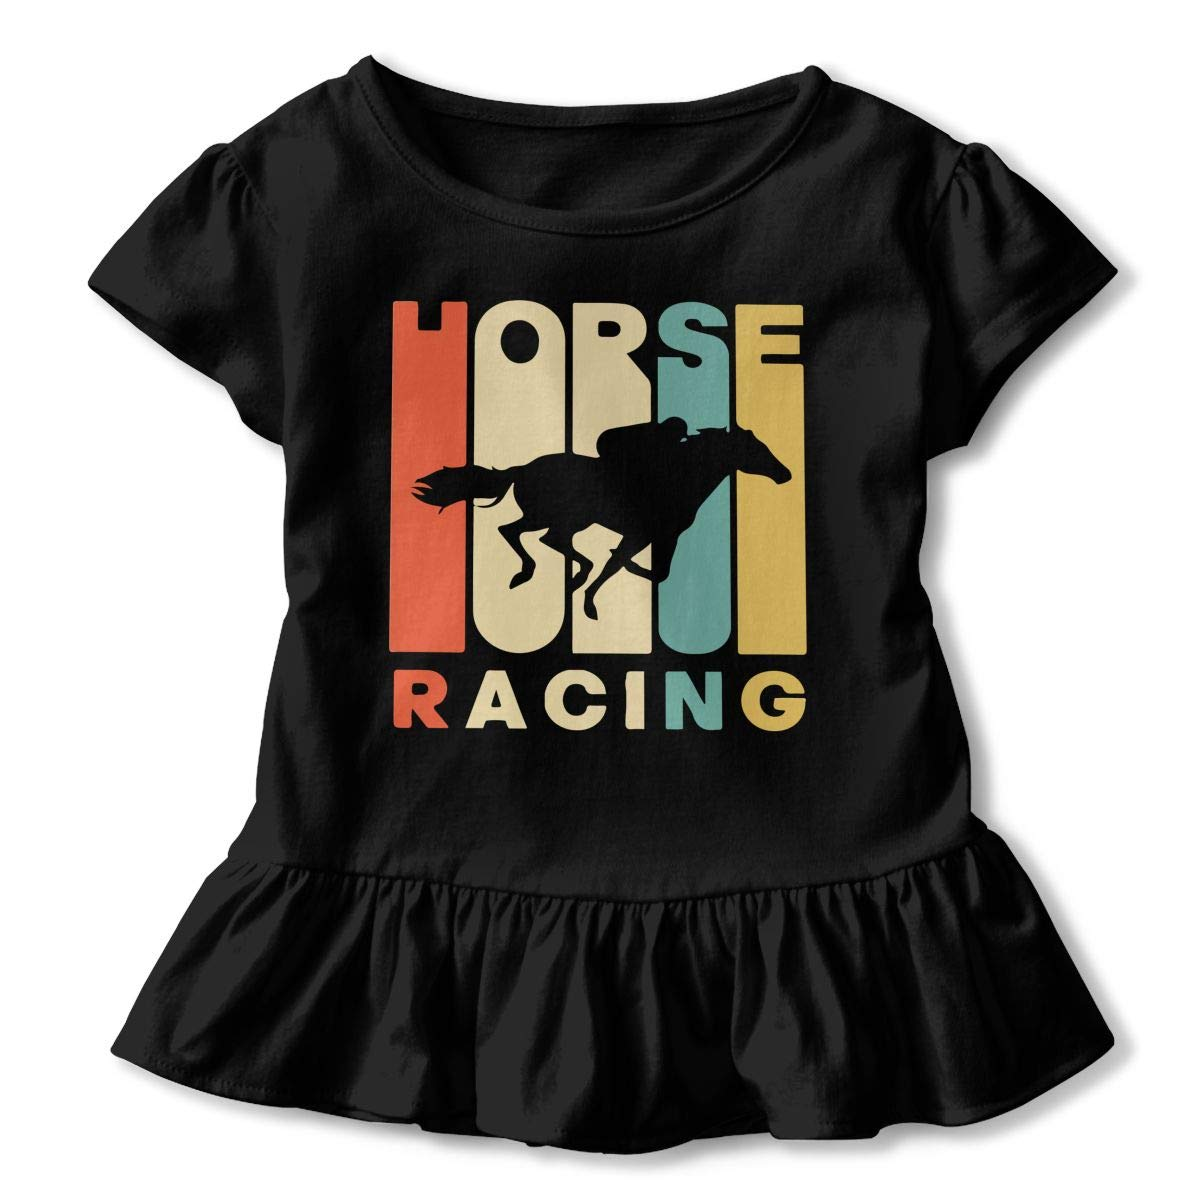 Vintage Style Horse Racing Silhouette Kids Girls Short Sleeve Ruffles Shirt Tee Jersey for 2-6T